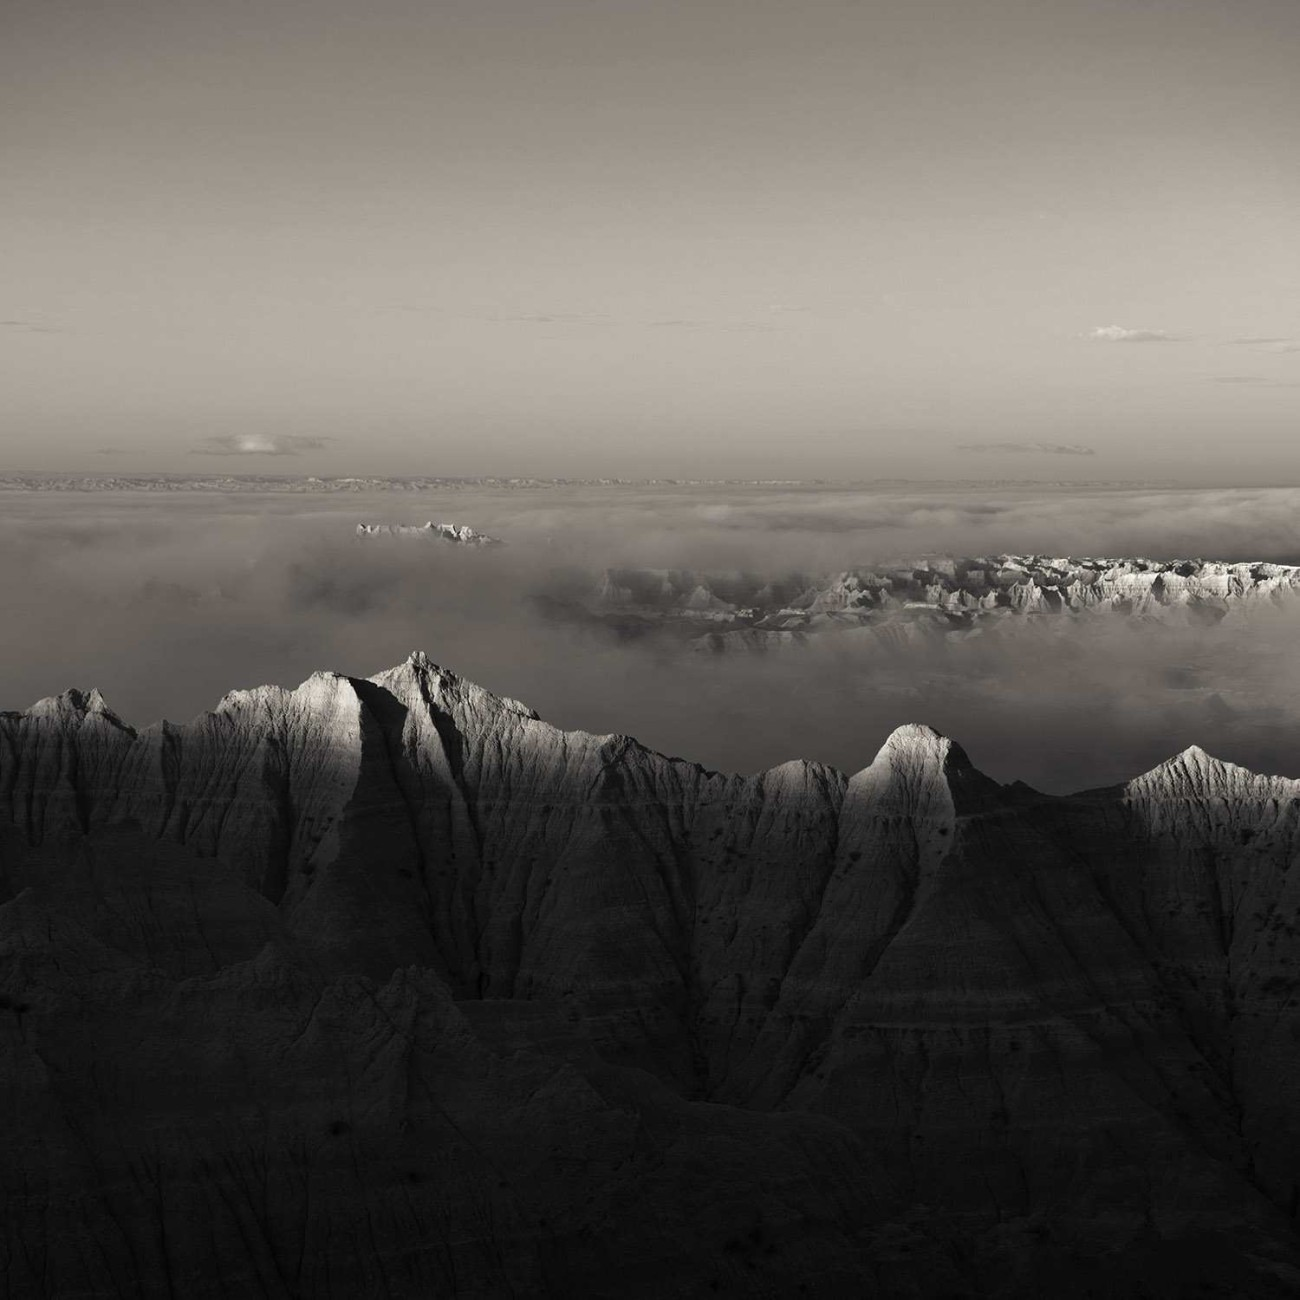 Morning fog in the Badlands, SD, 2010